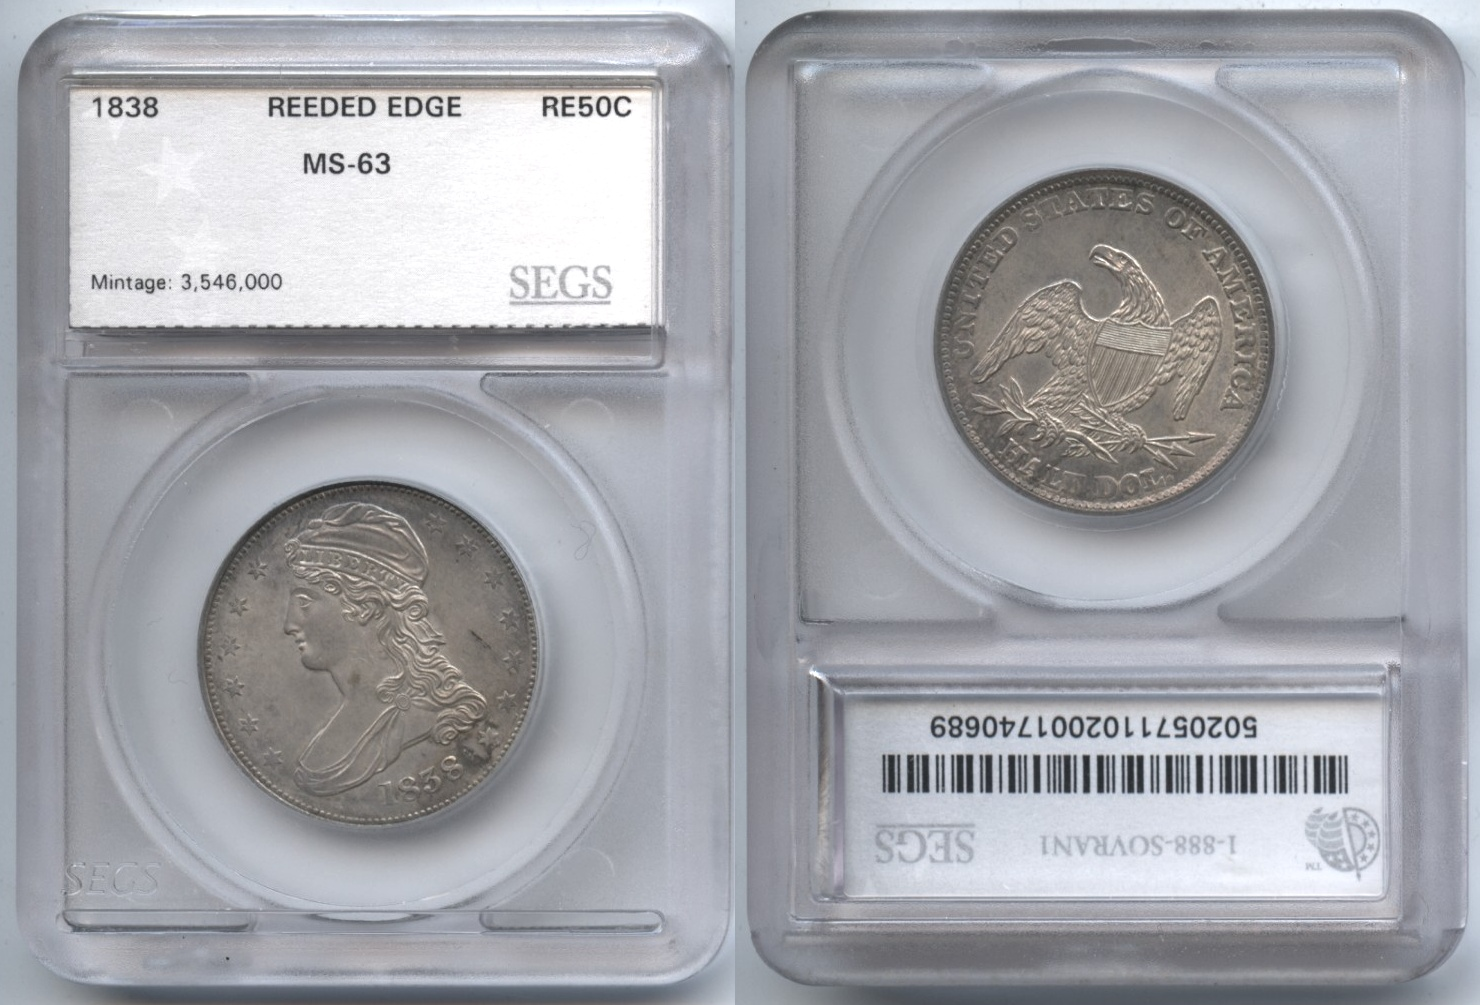 1838 Reeded Edge Capped Bust Half Dollar SEGS MS-63